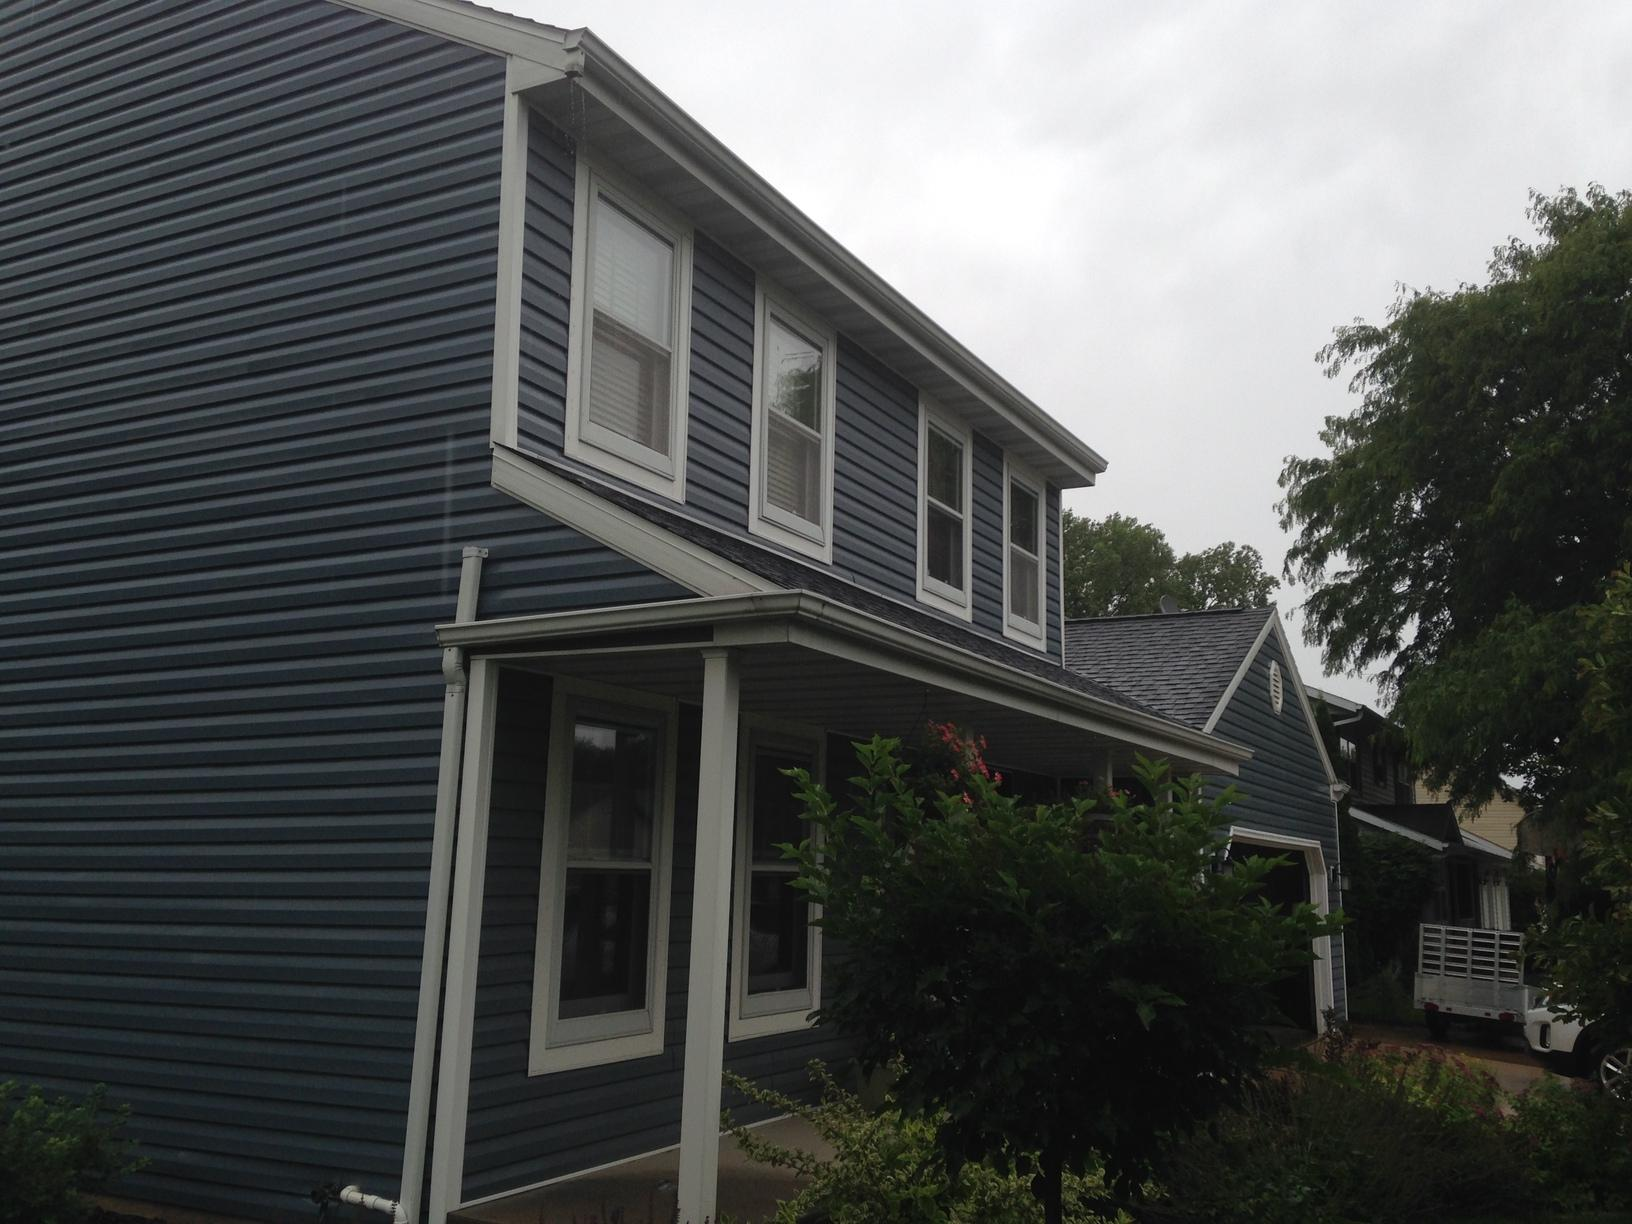 New GAF Roof and LeafGuard installed in Neenah, WI - Before Photo